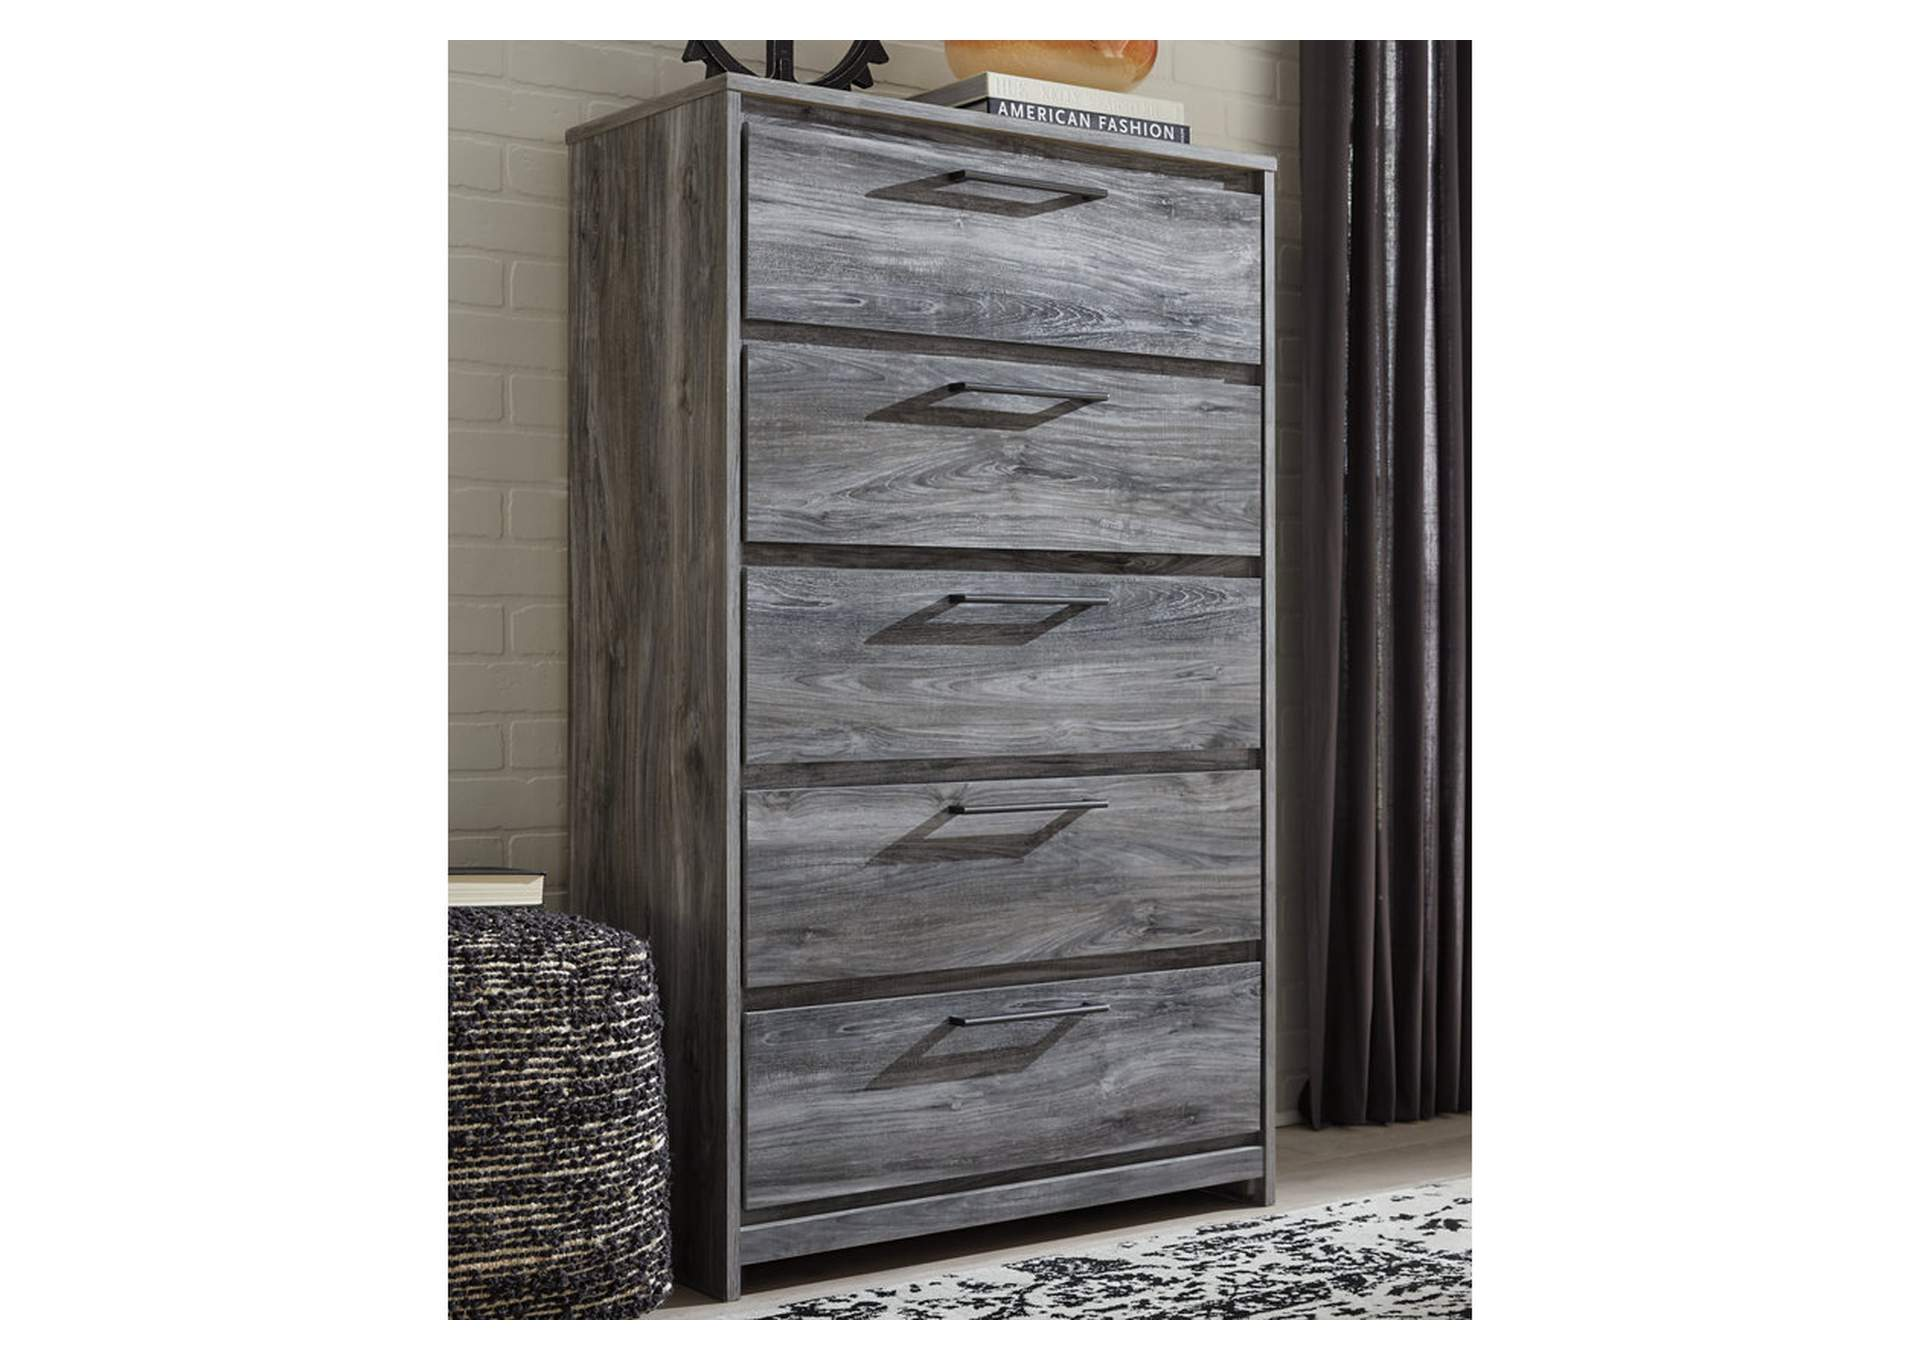 Baystorm Chest of Drawers,Signature Design By Ashley